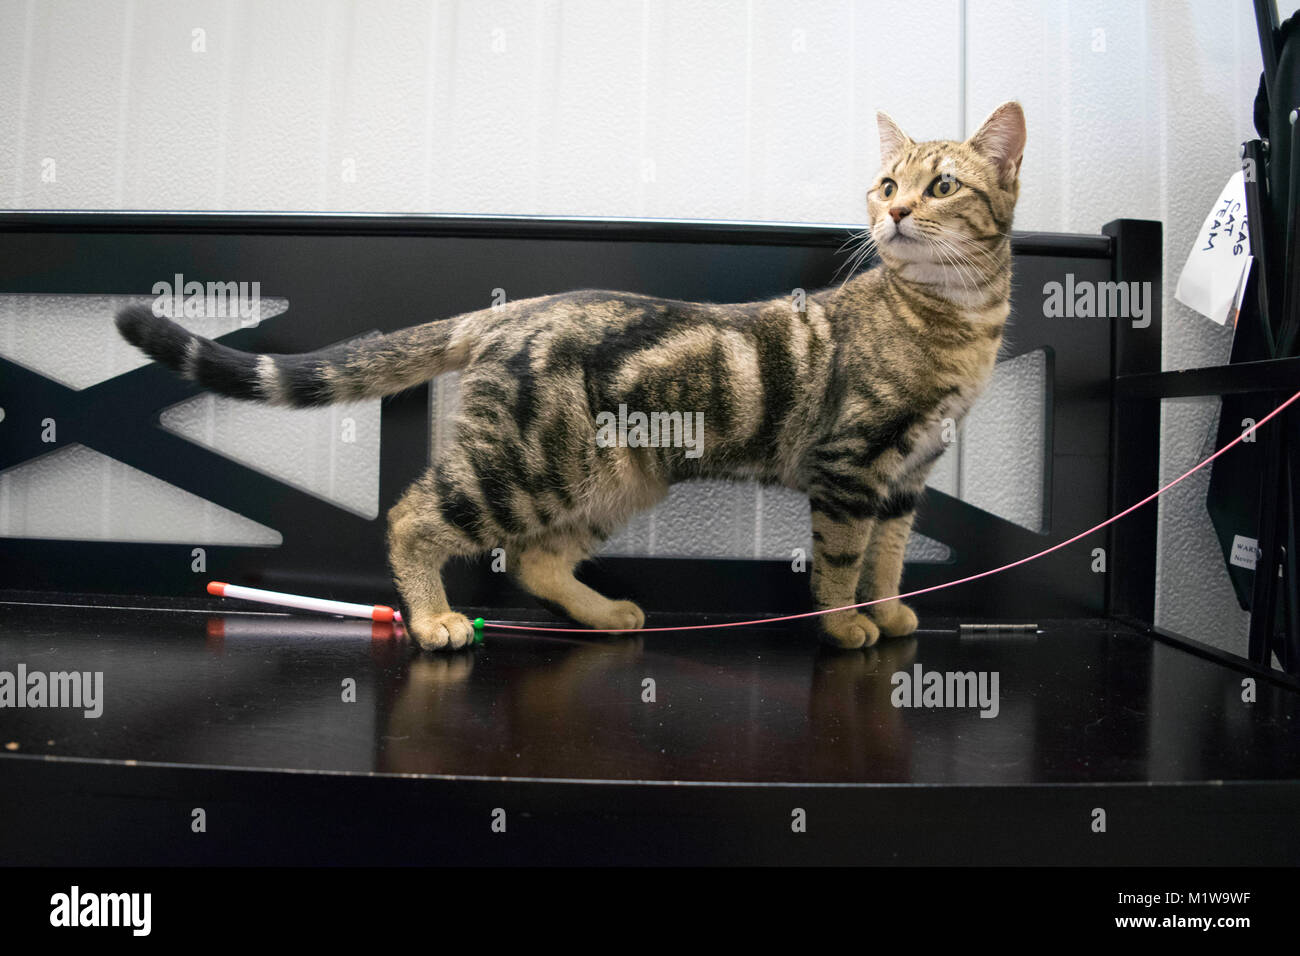 A cat explores its surroundings at the Yolo County Animal Shelter. - Stock Image